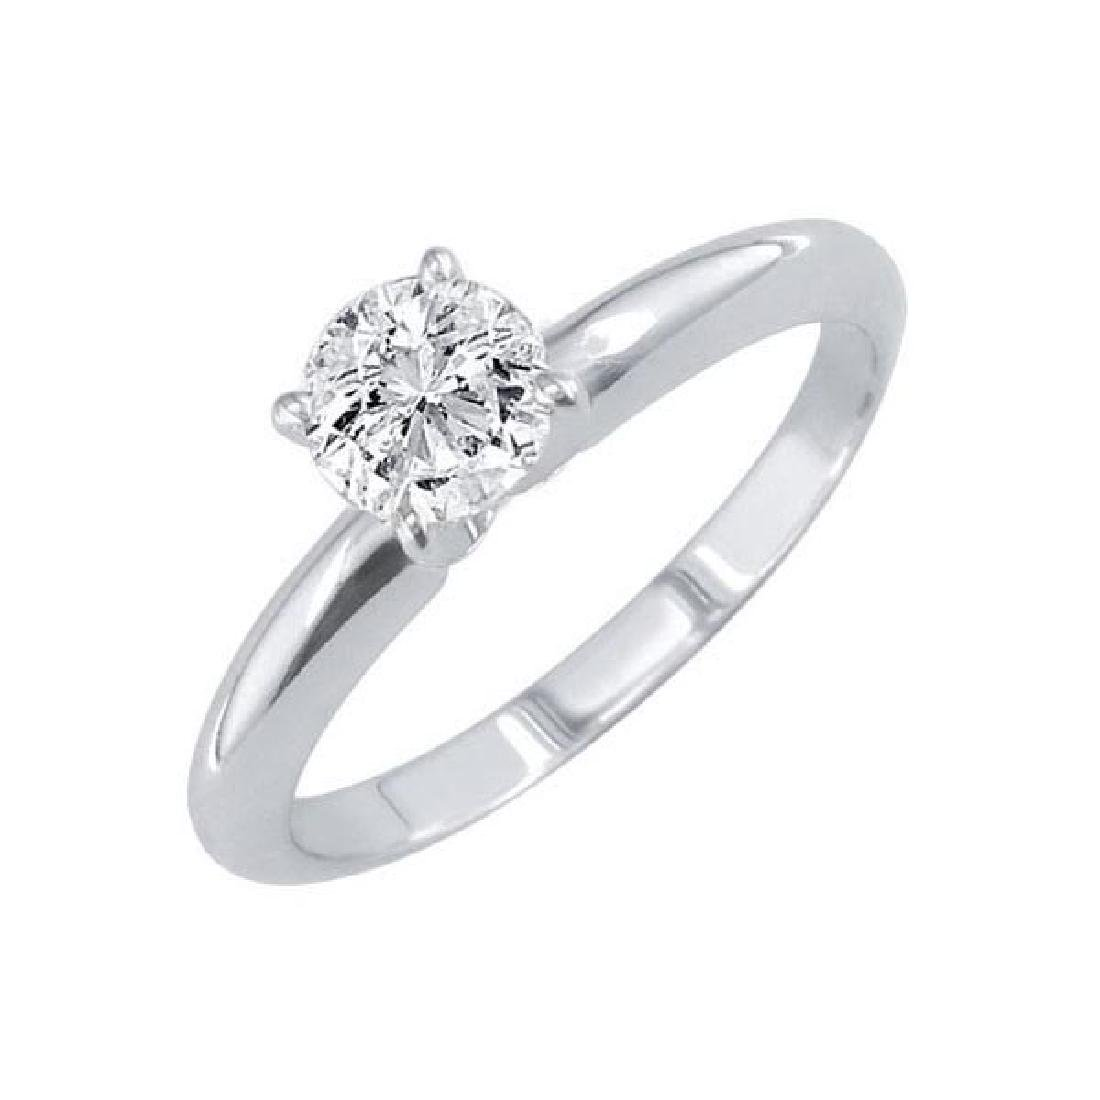 Certified 0.59 CTW Round Diamond Solitaire 14k Ring F/S